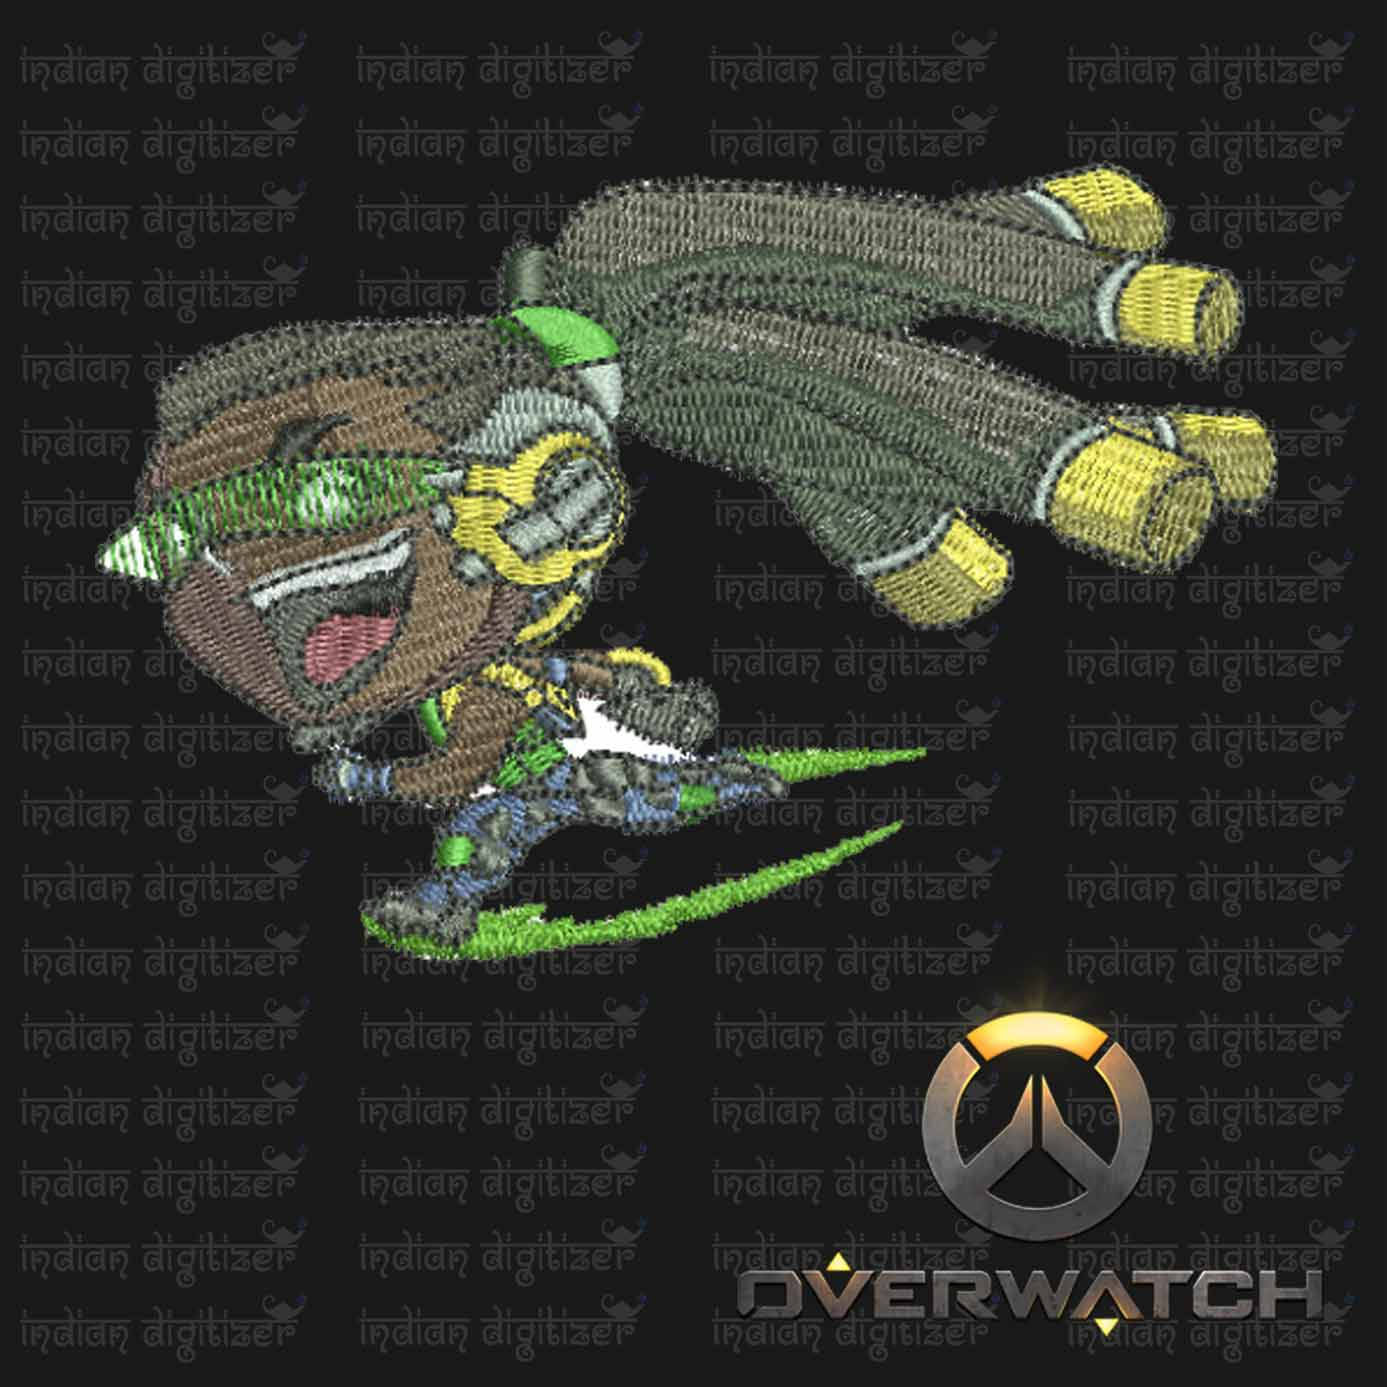 Overwatch Embroidery Designs - Lucio individual character for 4x4in hoop - resizable with freely downloadable software.